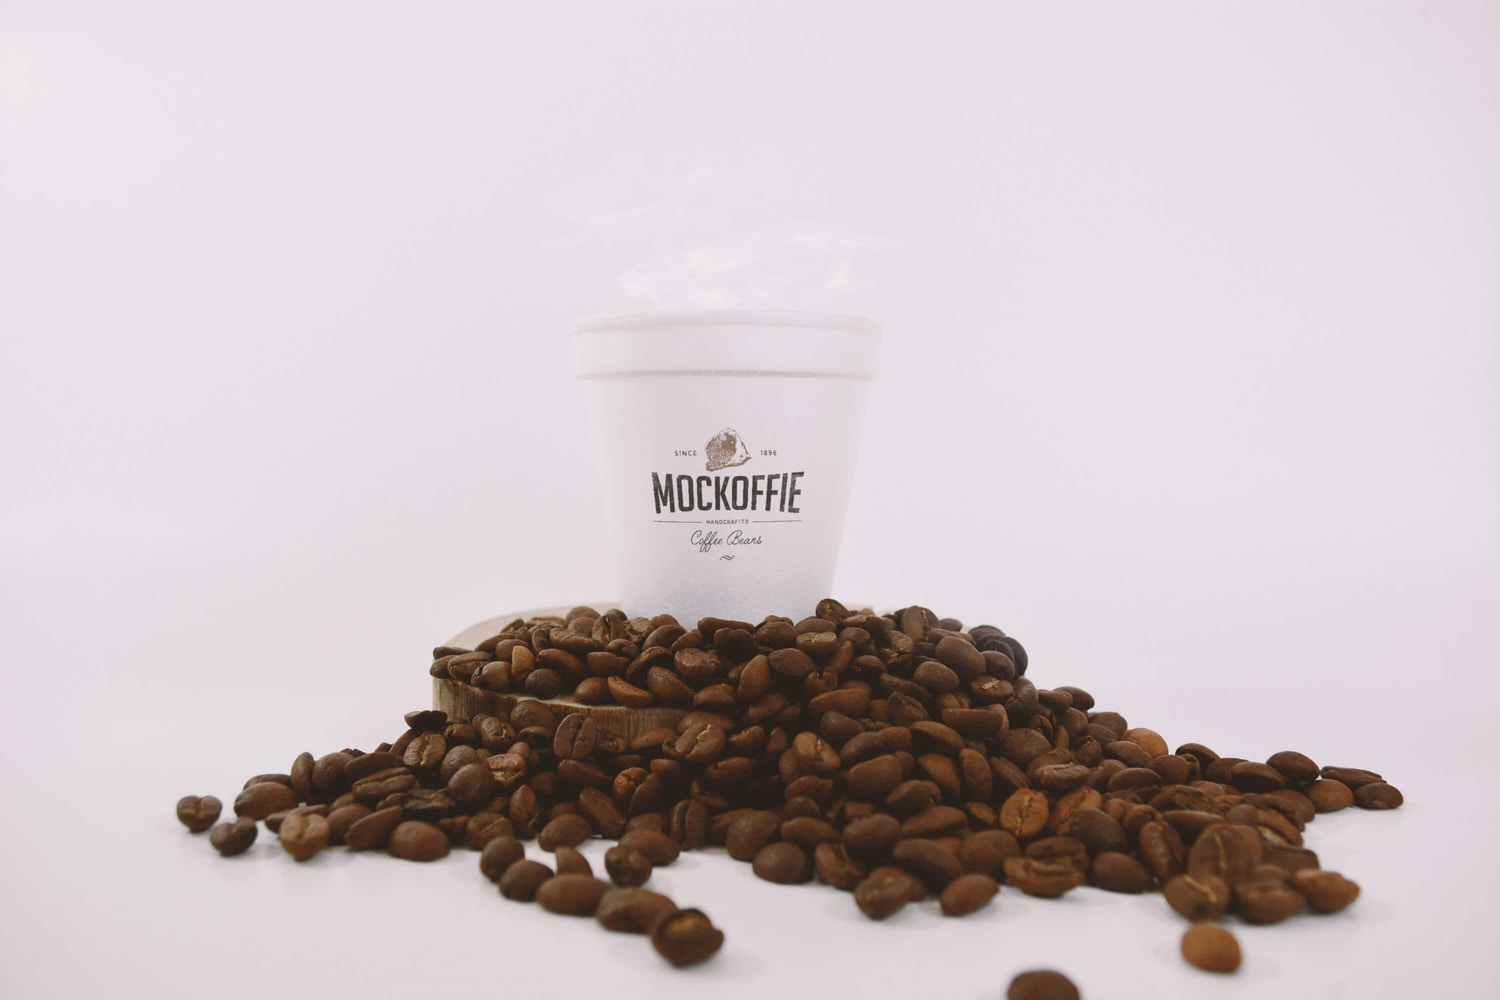 Coffee Cup Mockup by Eduardo Mejia on Original Mockups